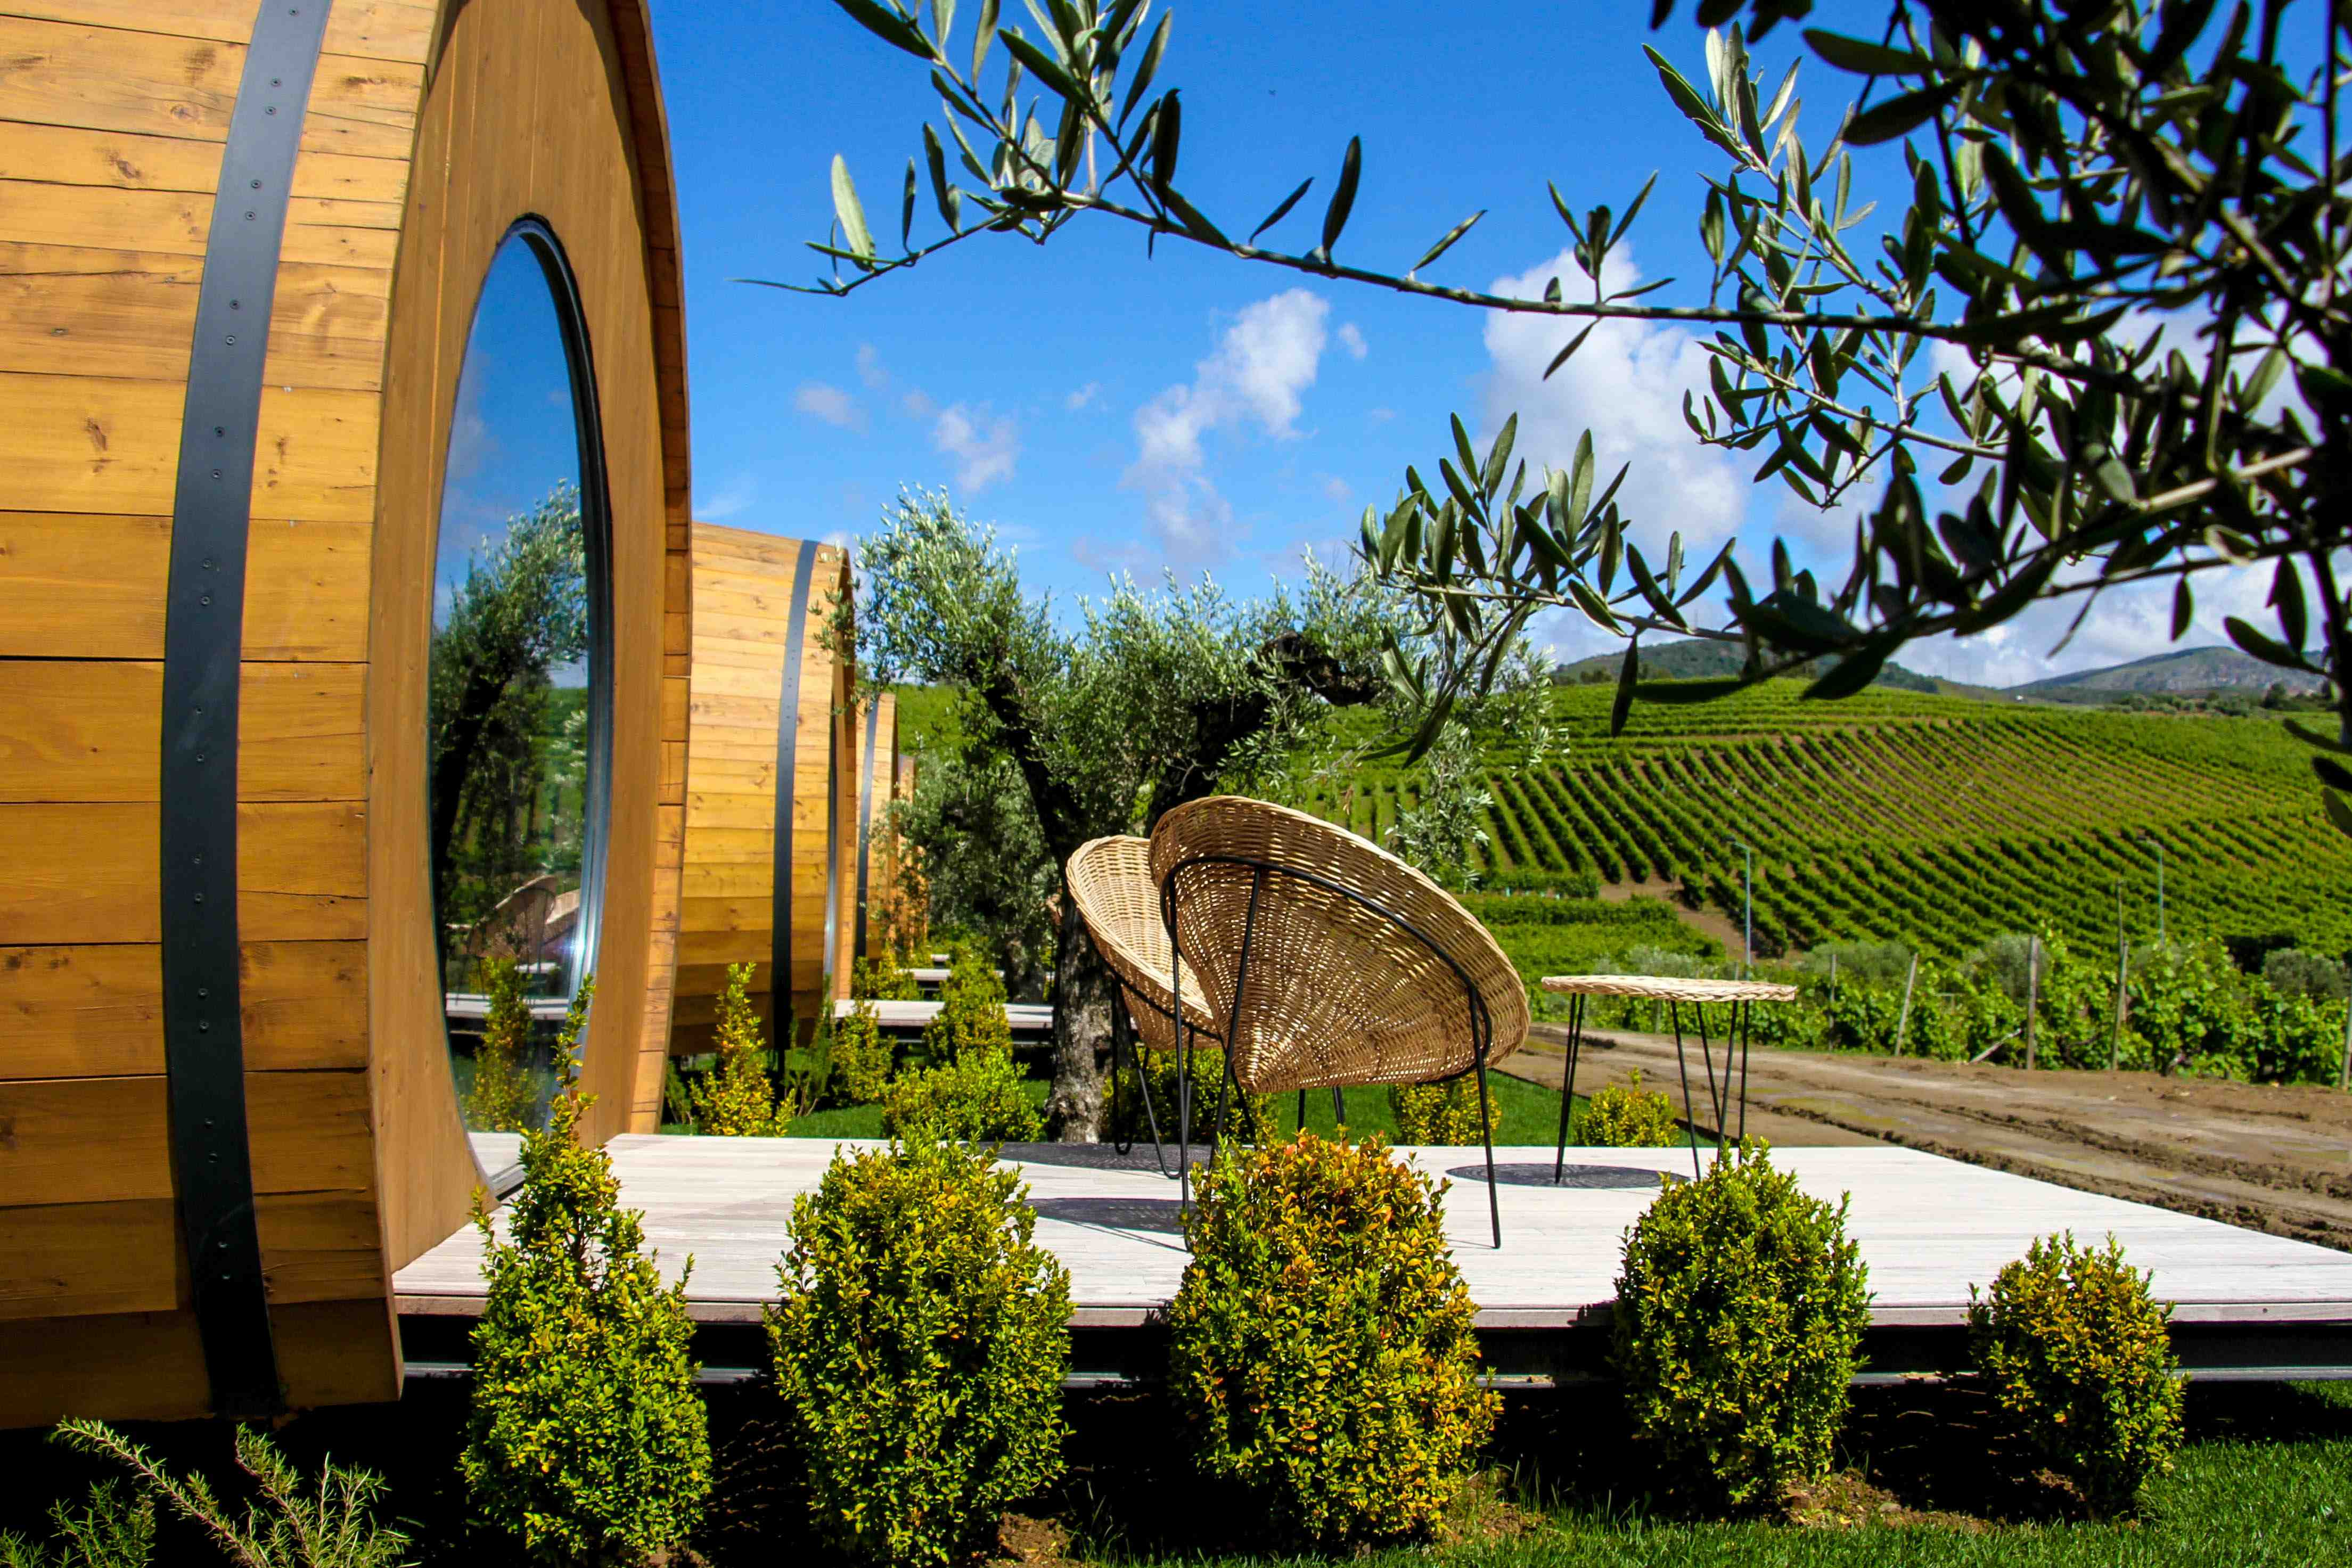 Sleep in a Giant Wine Barrel in Portugal And Drink Wine All Day